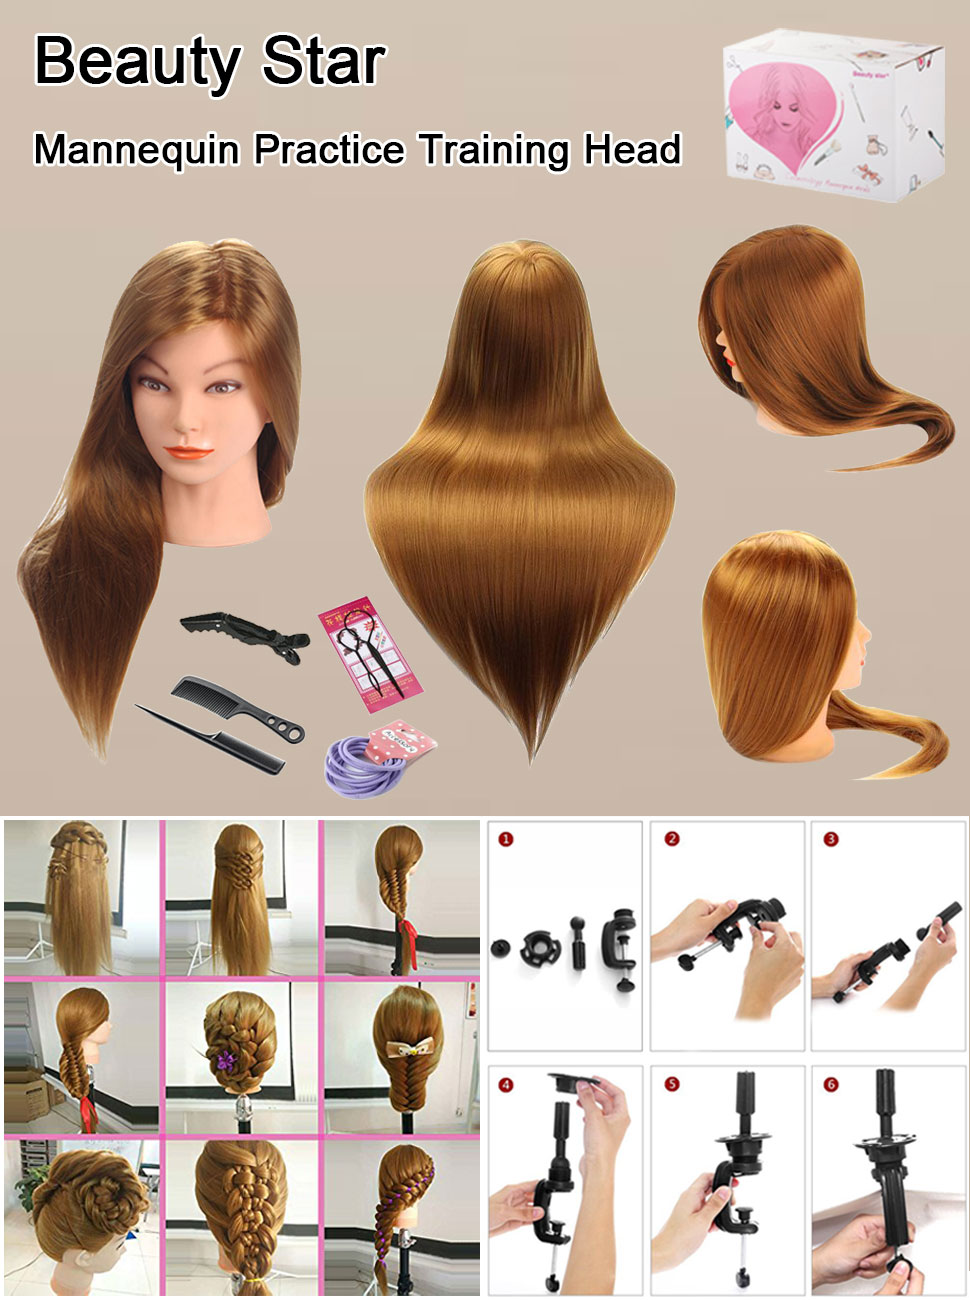 Hearty Synthetic Mannequin Head Female Hair Head Doll 22 Inches Mannequin Doll Head Hairdressing Training Heads Styling With Fiber Hair Extensions & Wigs Tools & Accessories